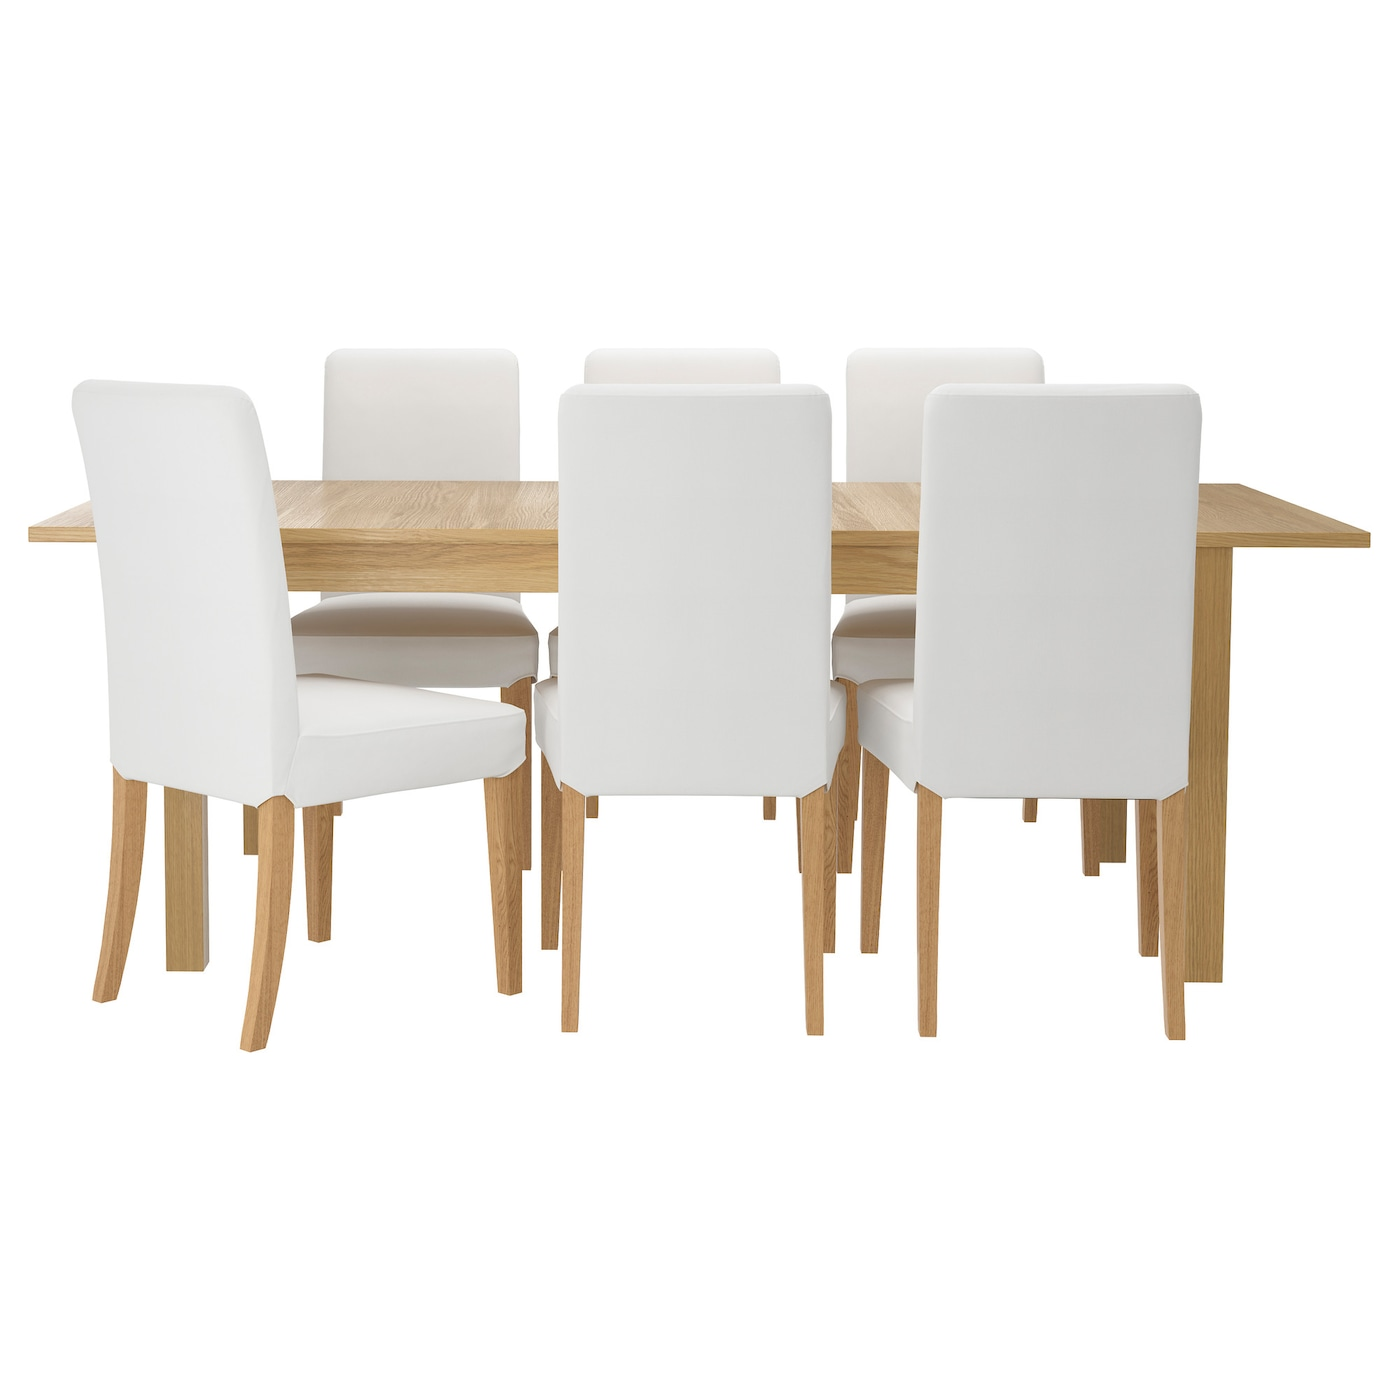 6 seater dining table chairs ikea - Seater dining table ikea ...